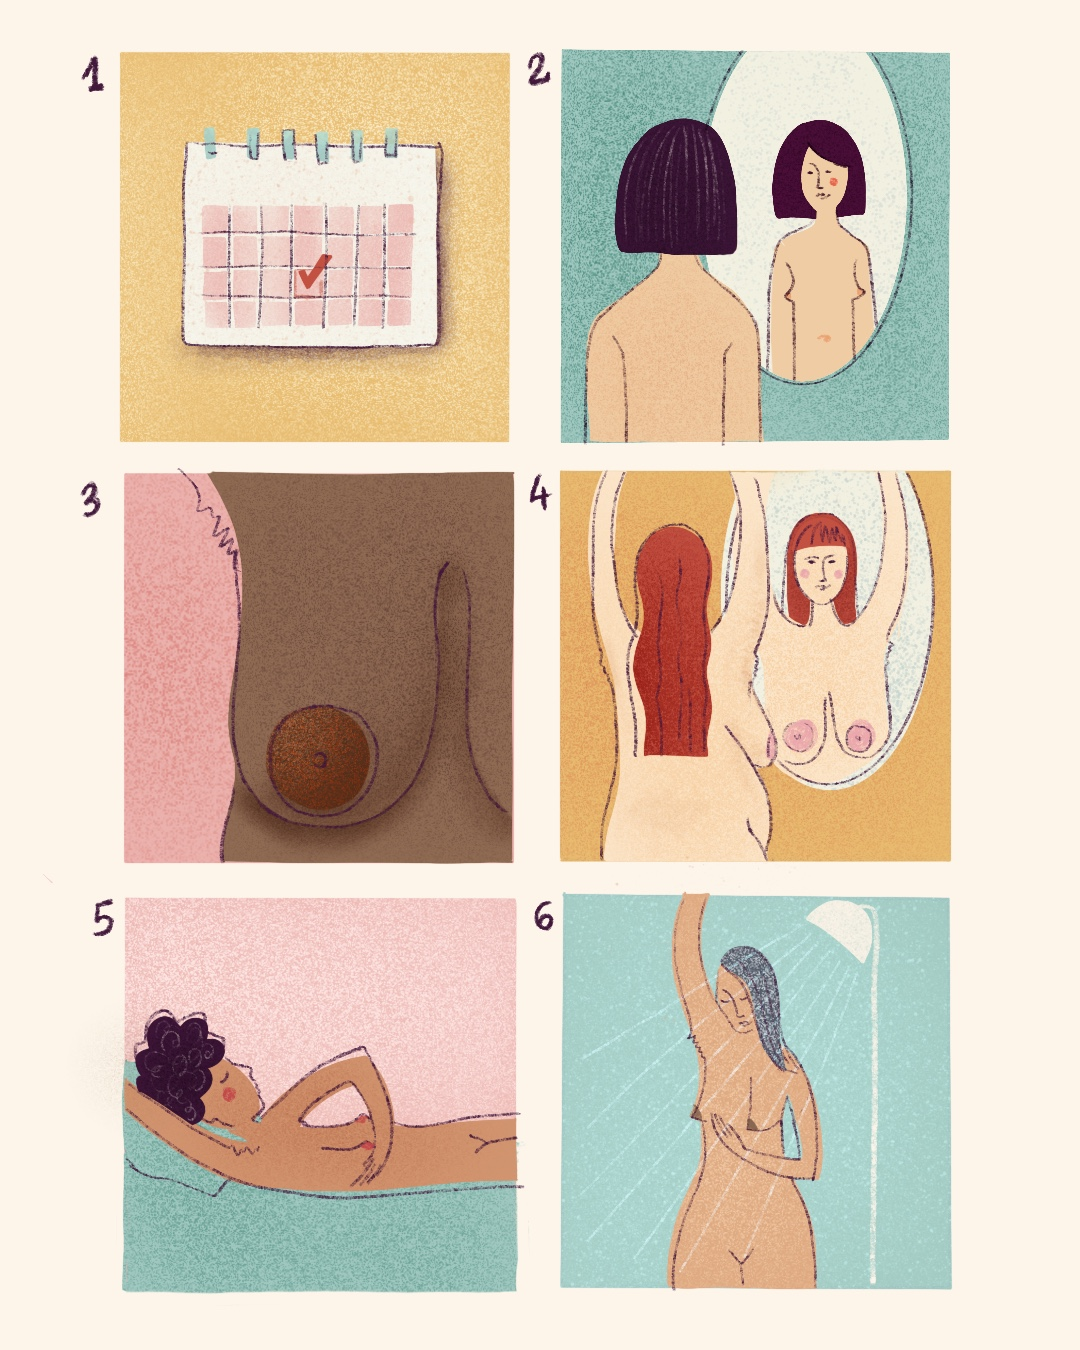 Breast Self-Exam – How to do it in 5 Easy Steps